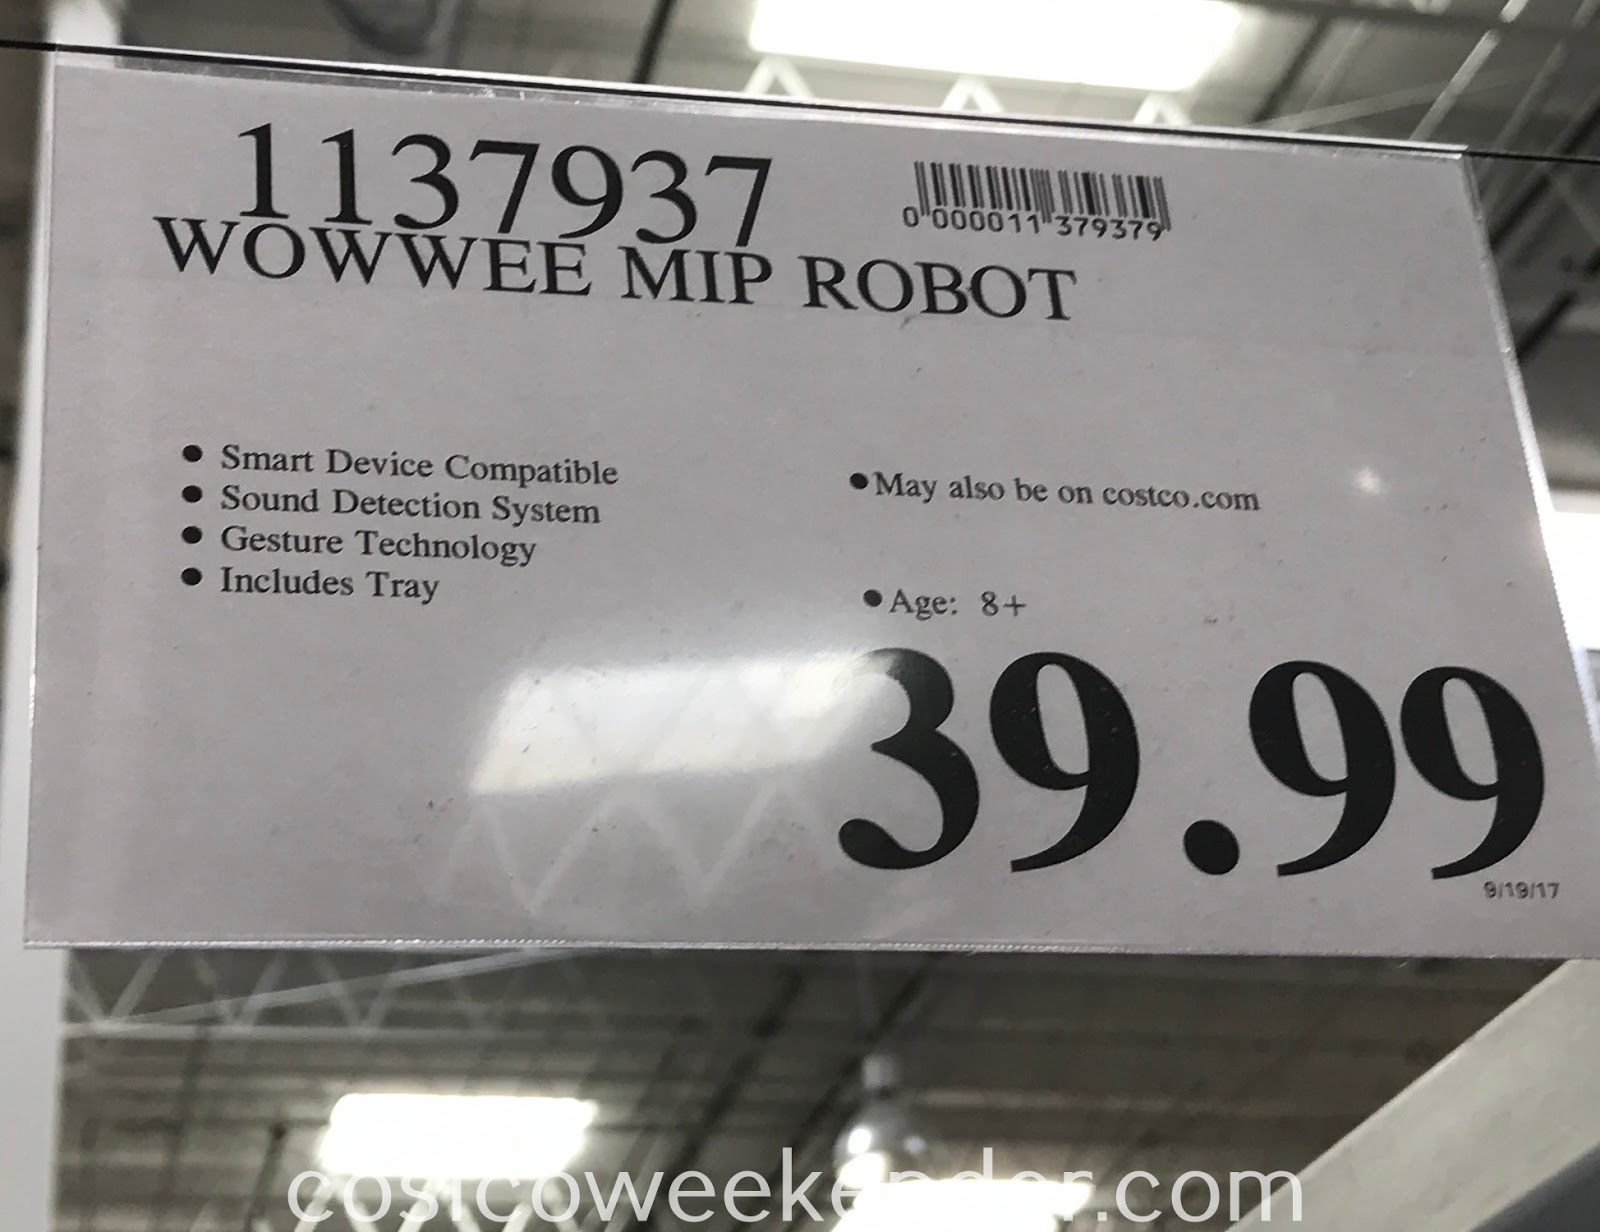 Deal for the WowWee MiP Robot at Costco